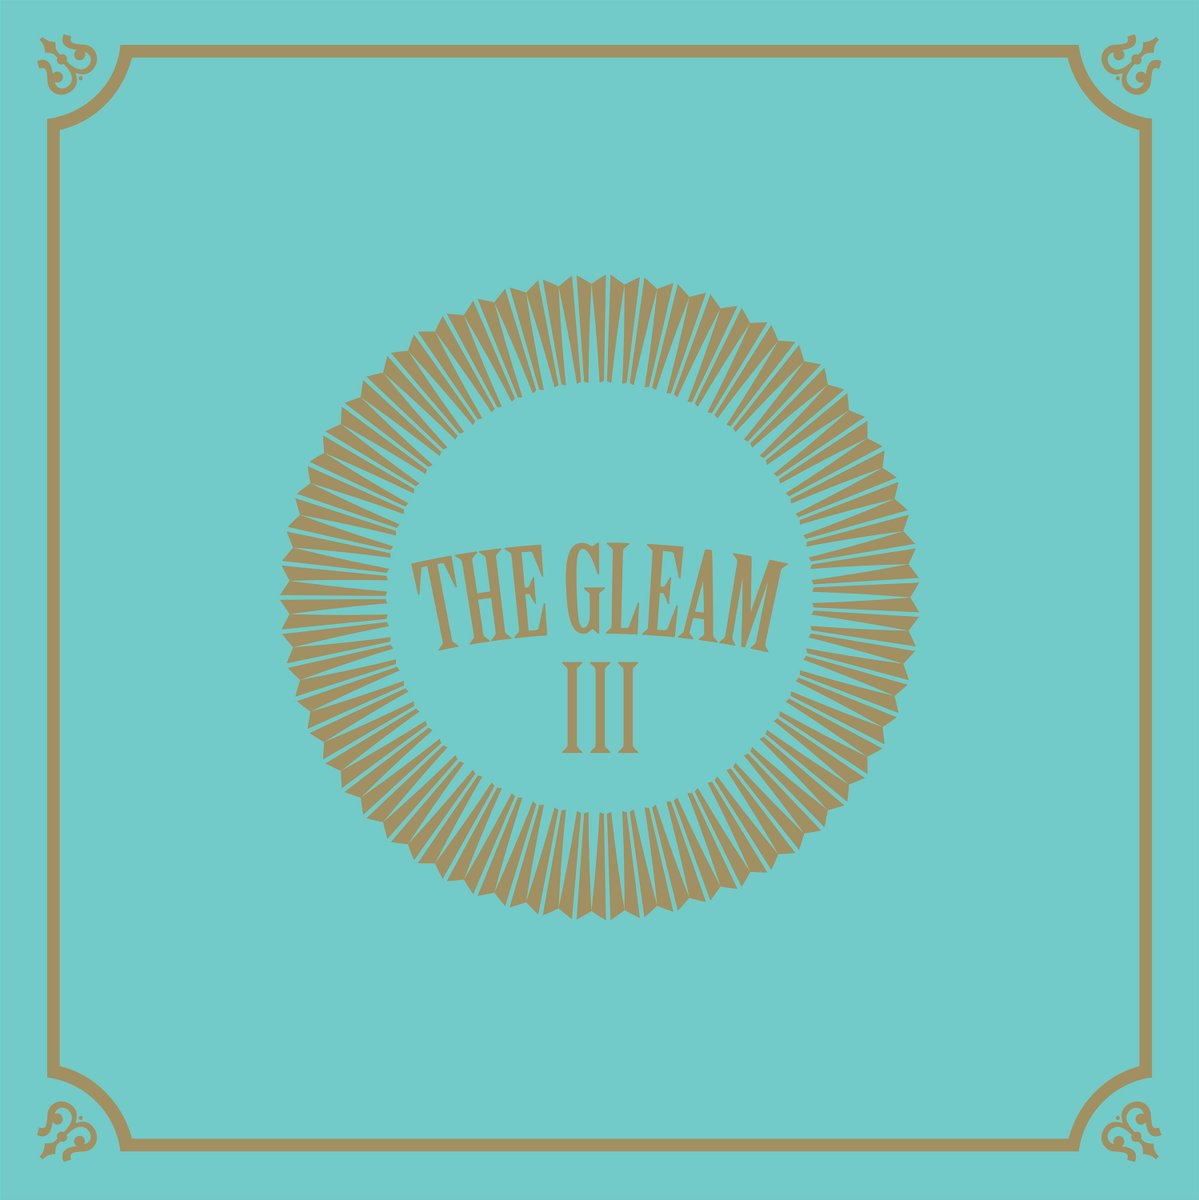 Announcing The Third Gleam: found.ee/theavettbrothe…